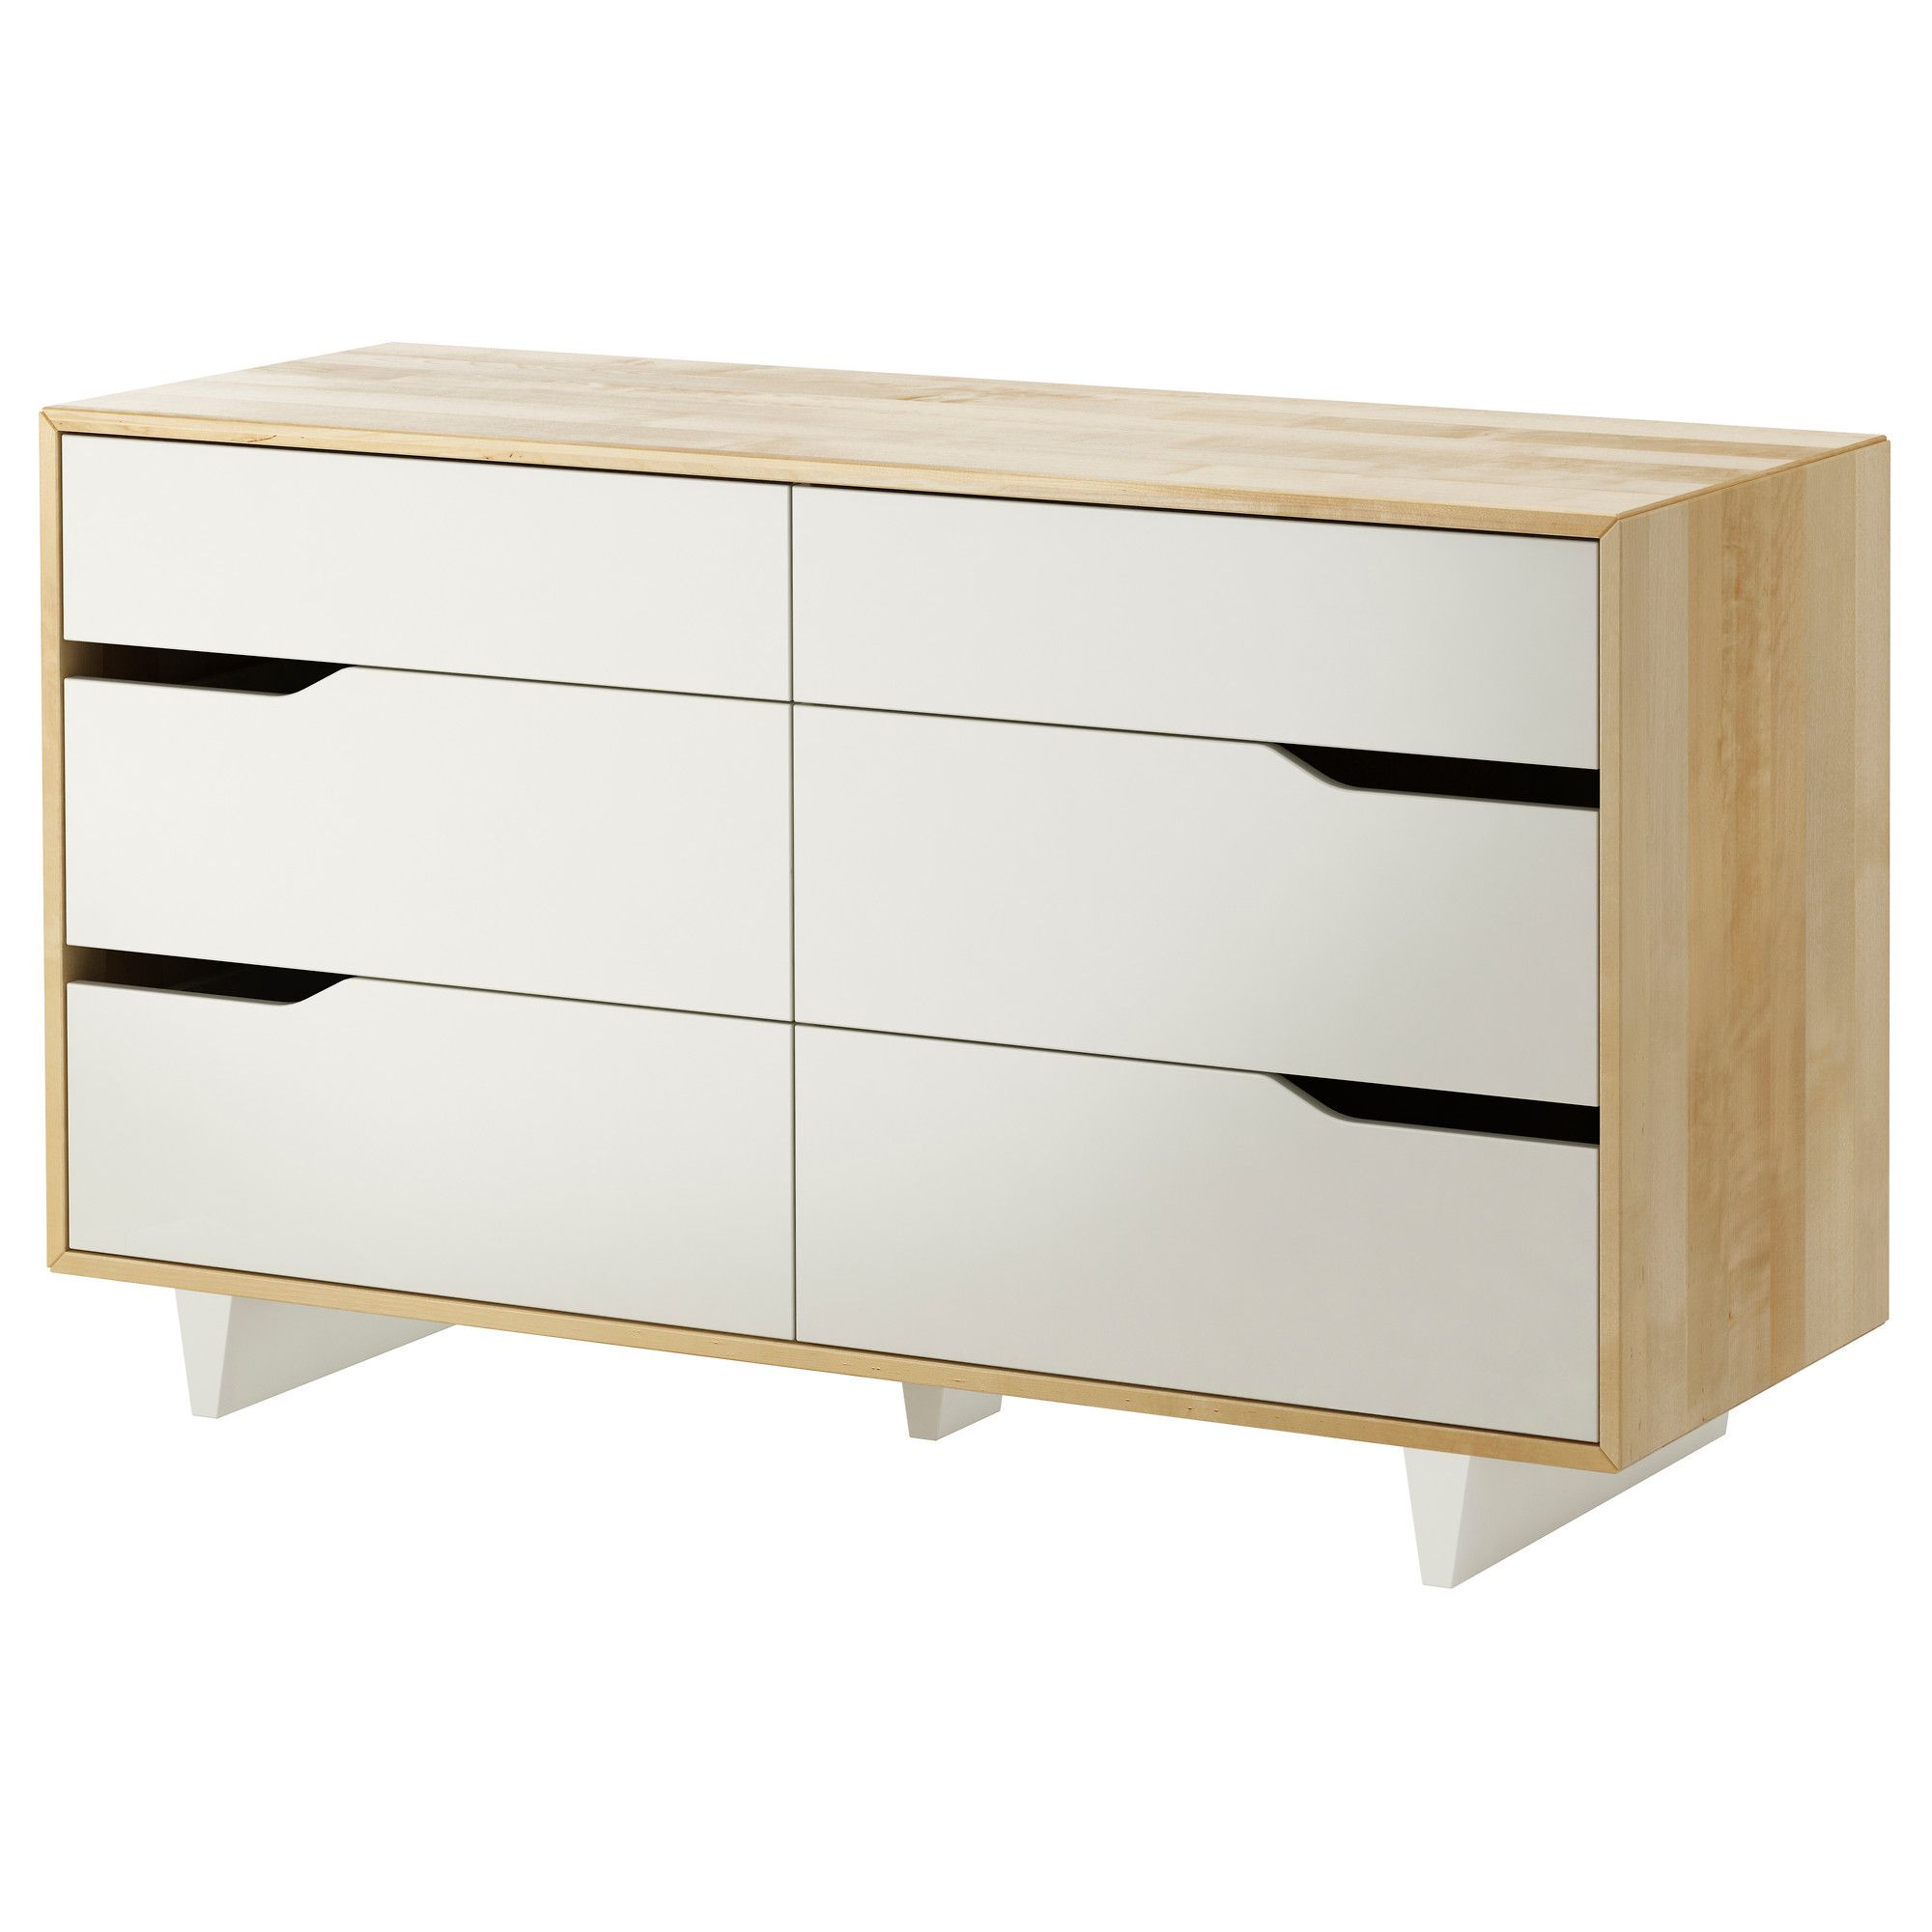 Mandal 6 Drawer Dresser Ikea An Alternative To